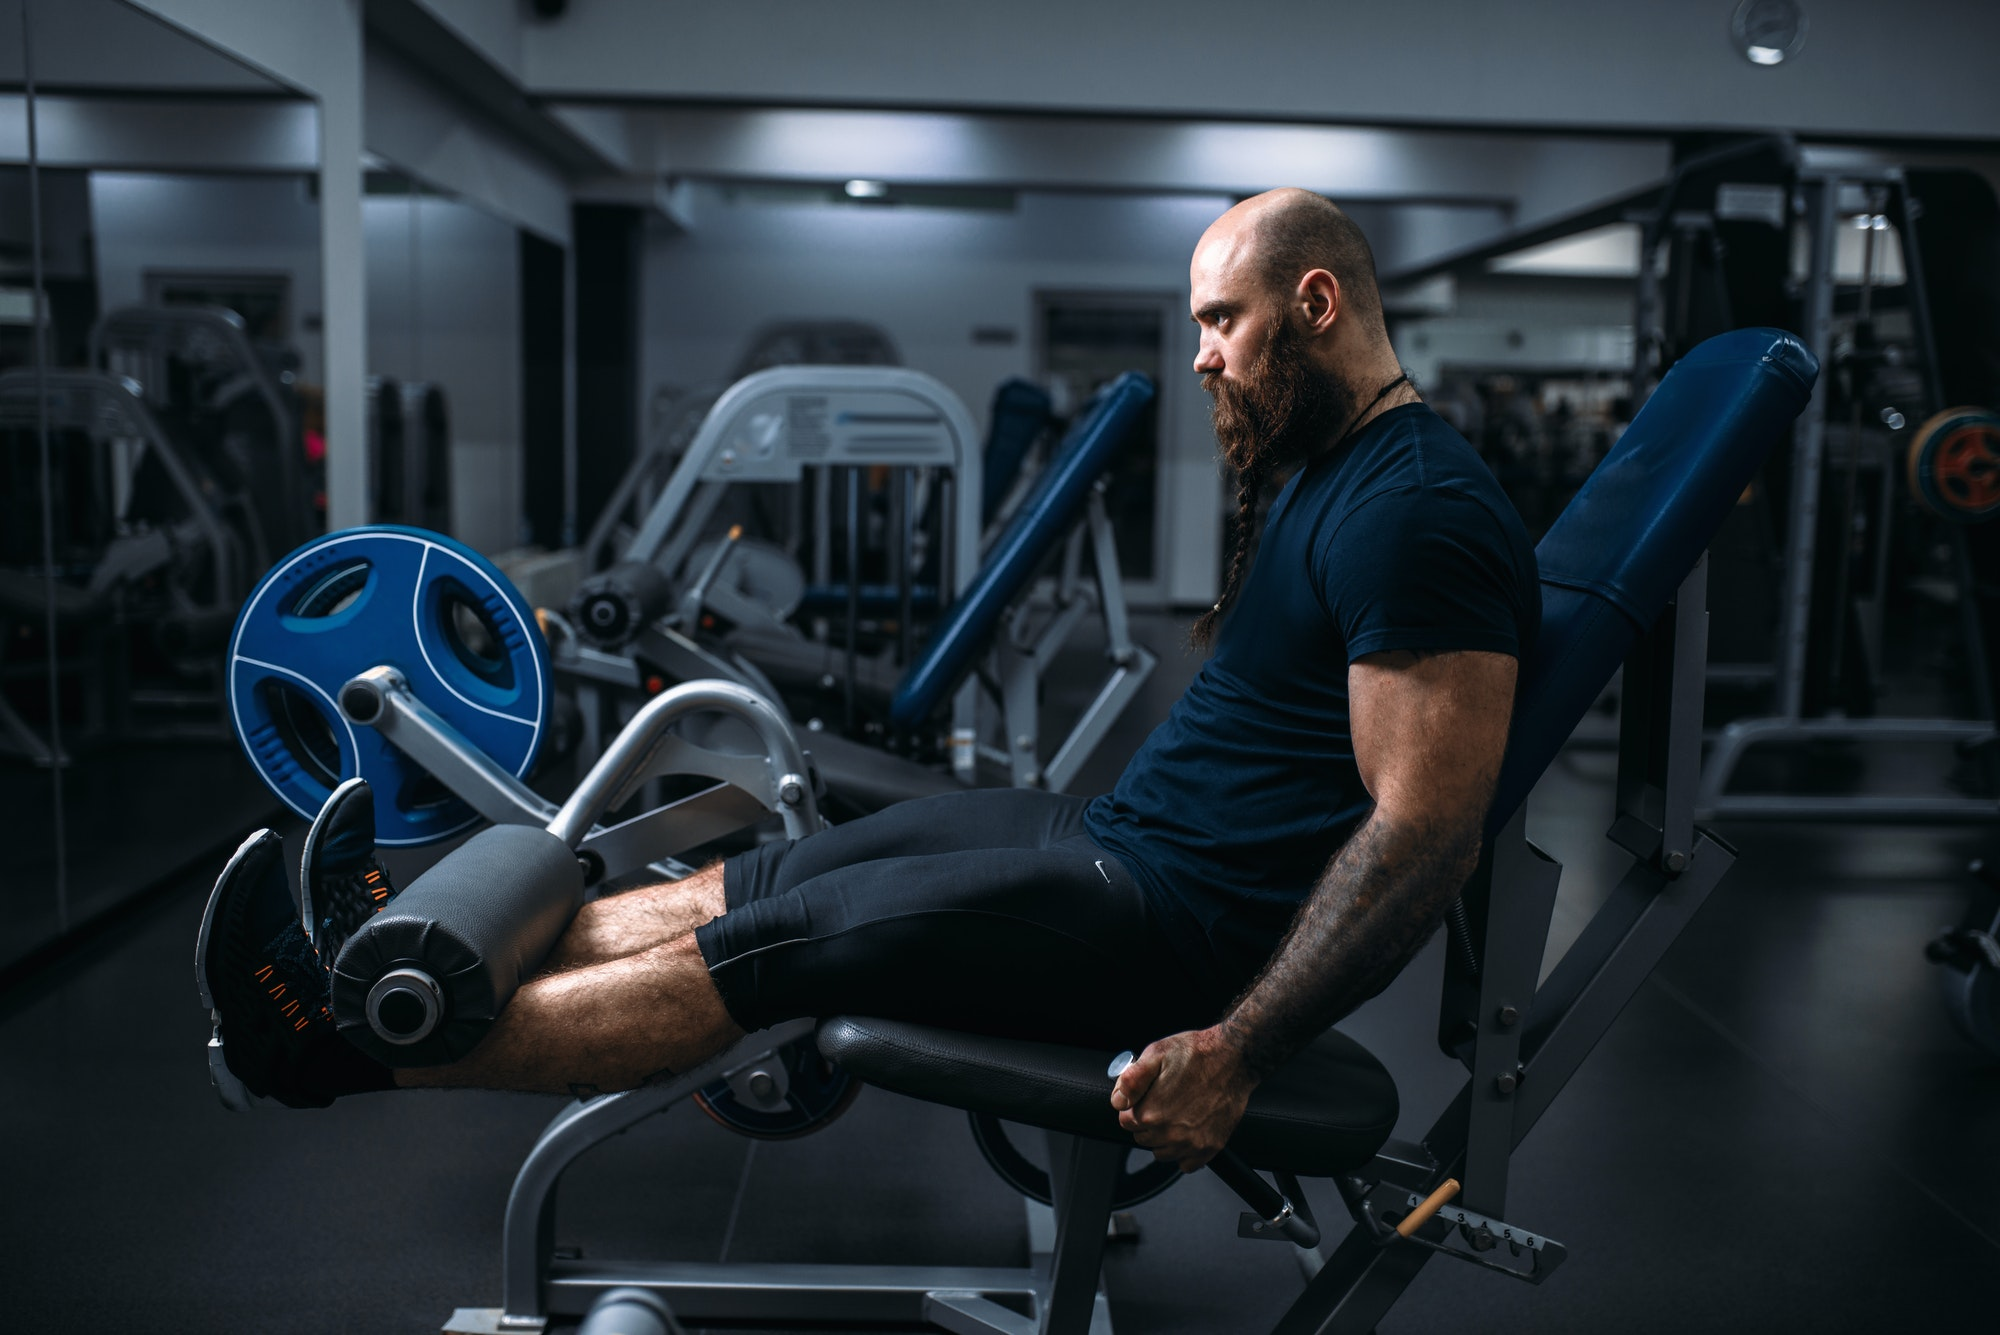 Muscular athlete trains legs on exercise machine